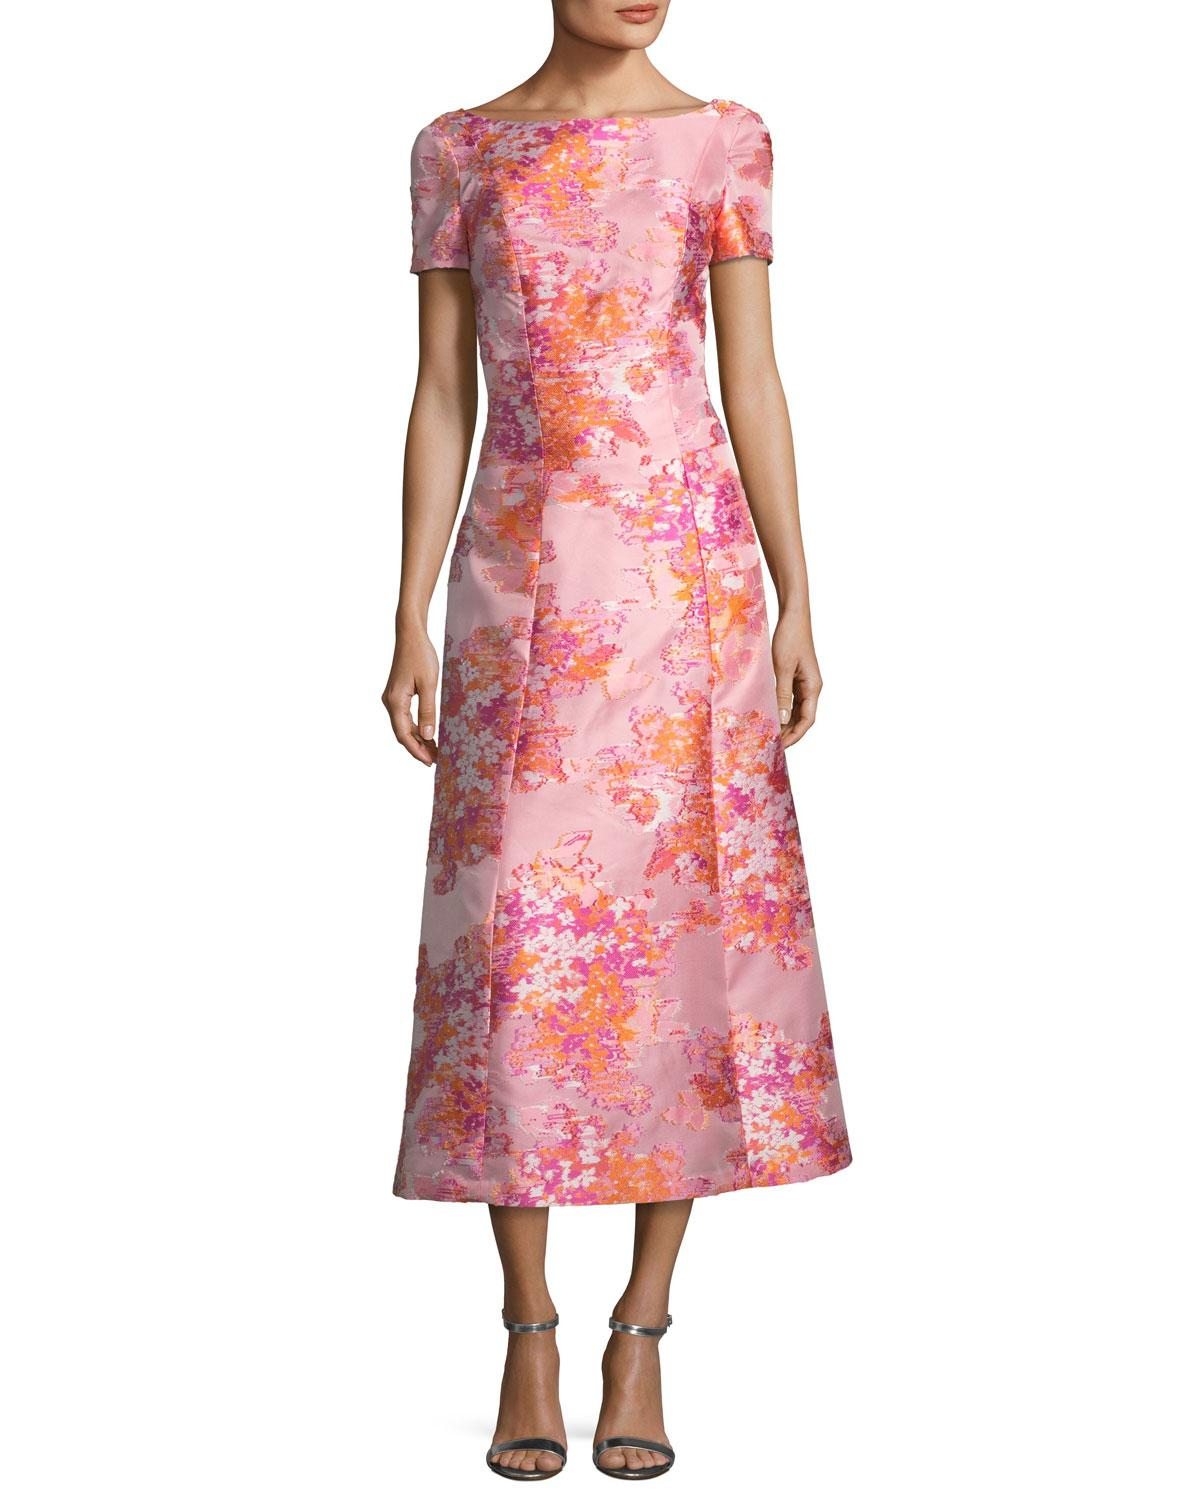 Lyst - St. John Washed Bouquet Jacquard Cocktail Dress in Pink